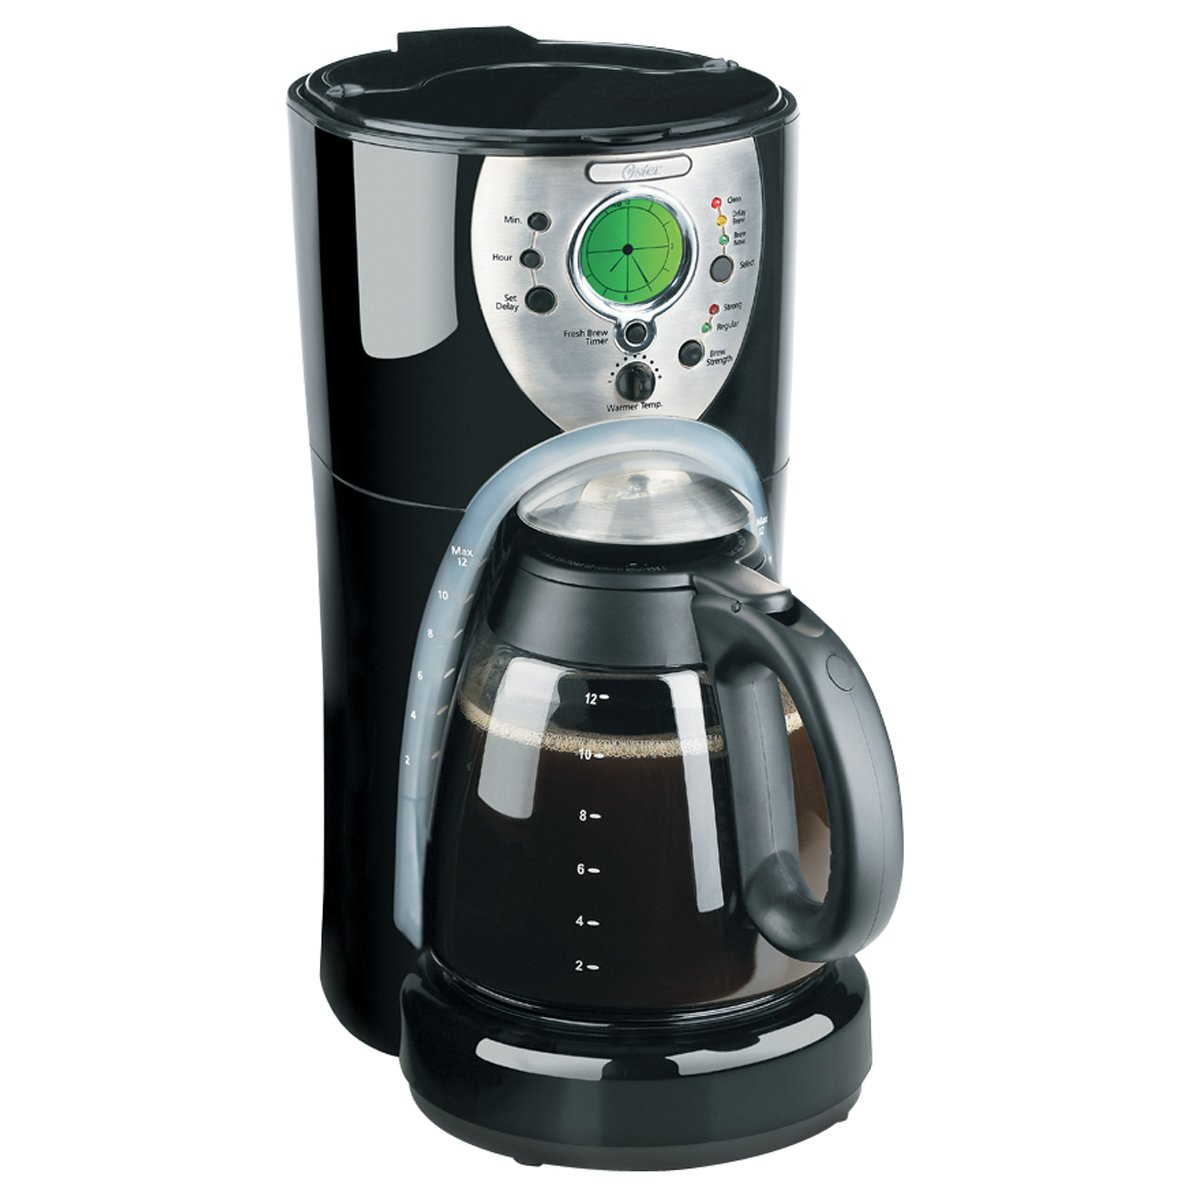 oster 12 cup programmable coffee maker review